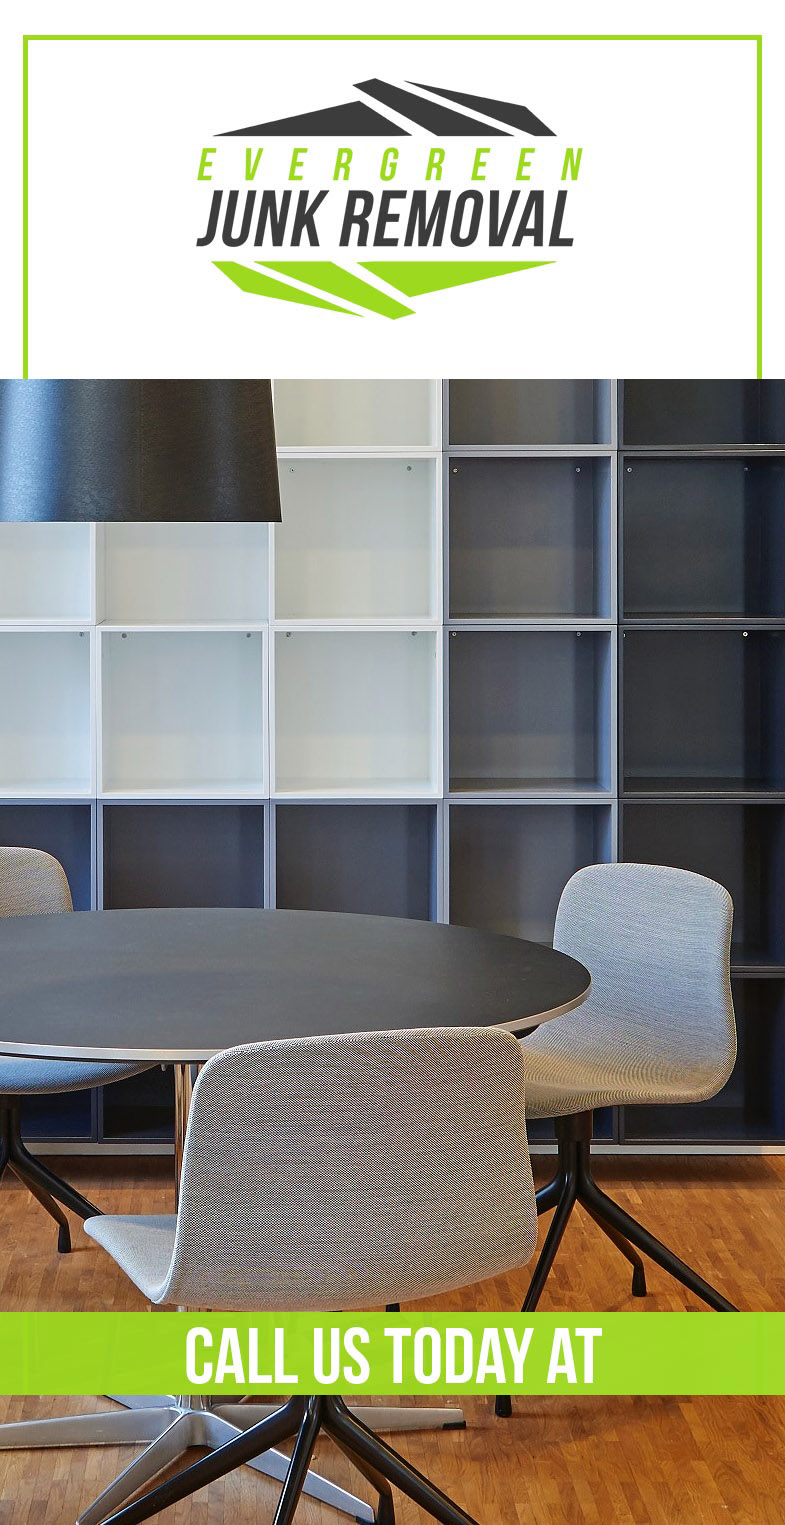 Office Cleaning Services Loxahatchee Groves FL